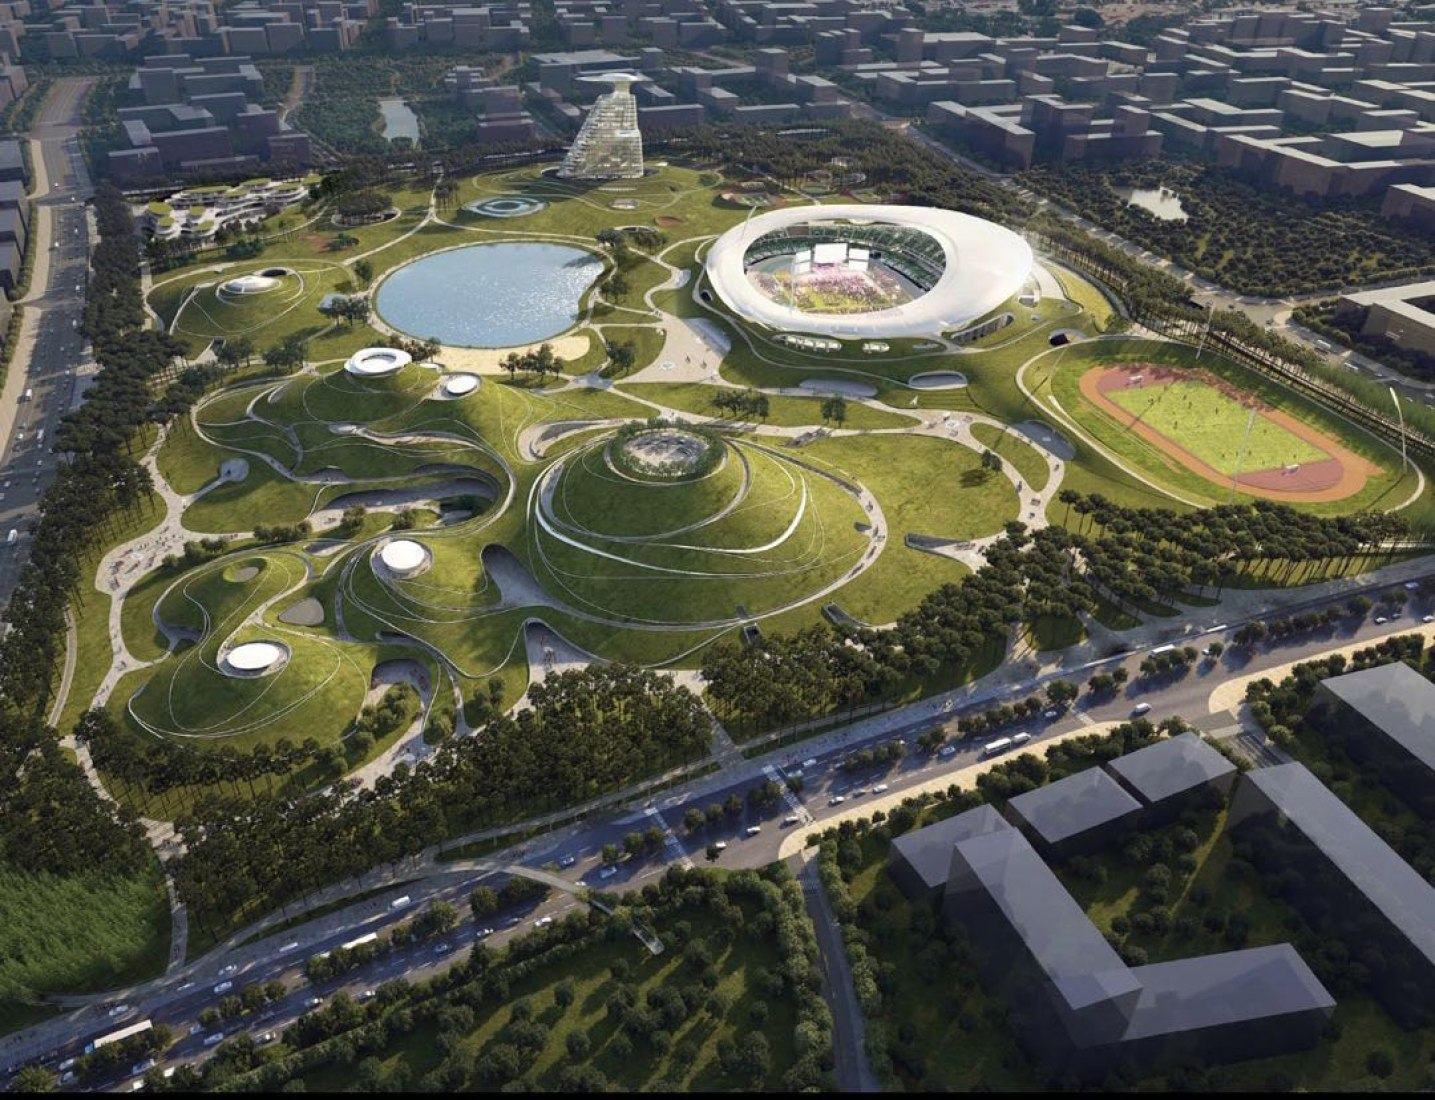 Overview rendering. Quzhou Sports Campus by MAD Architects. Image courtesy of MAD Architects